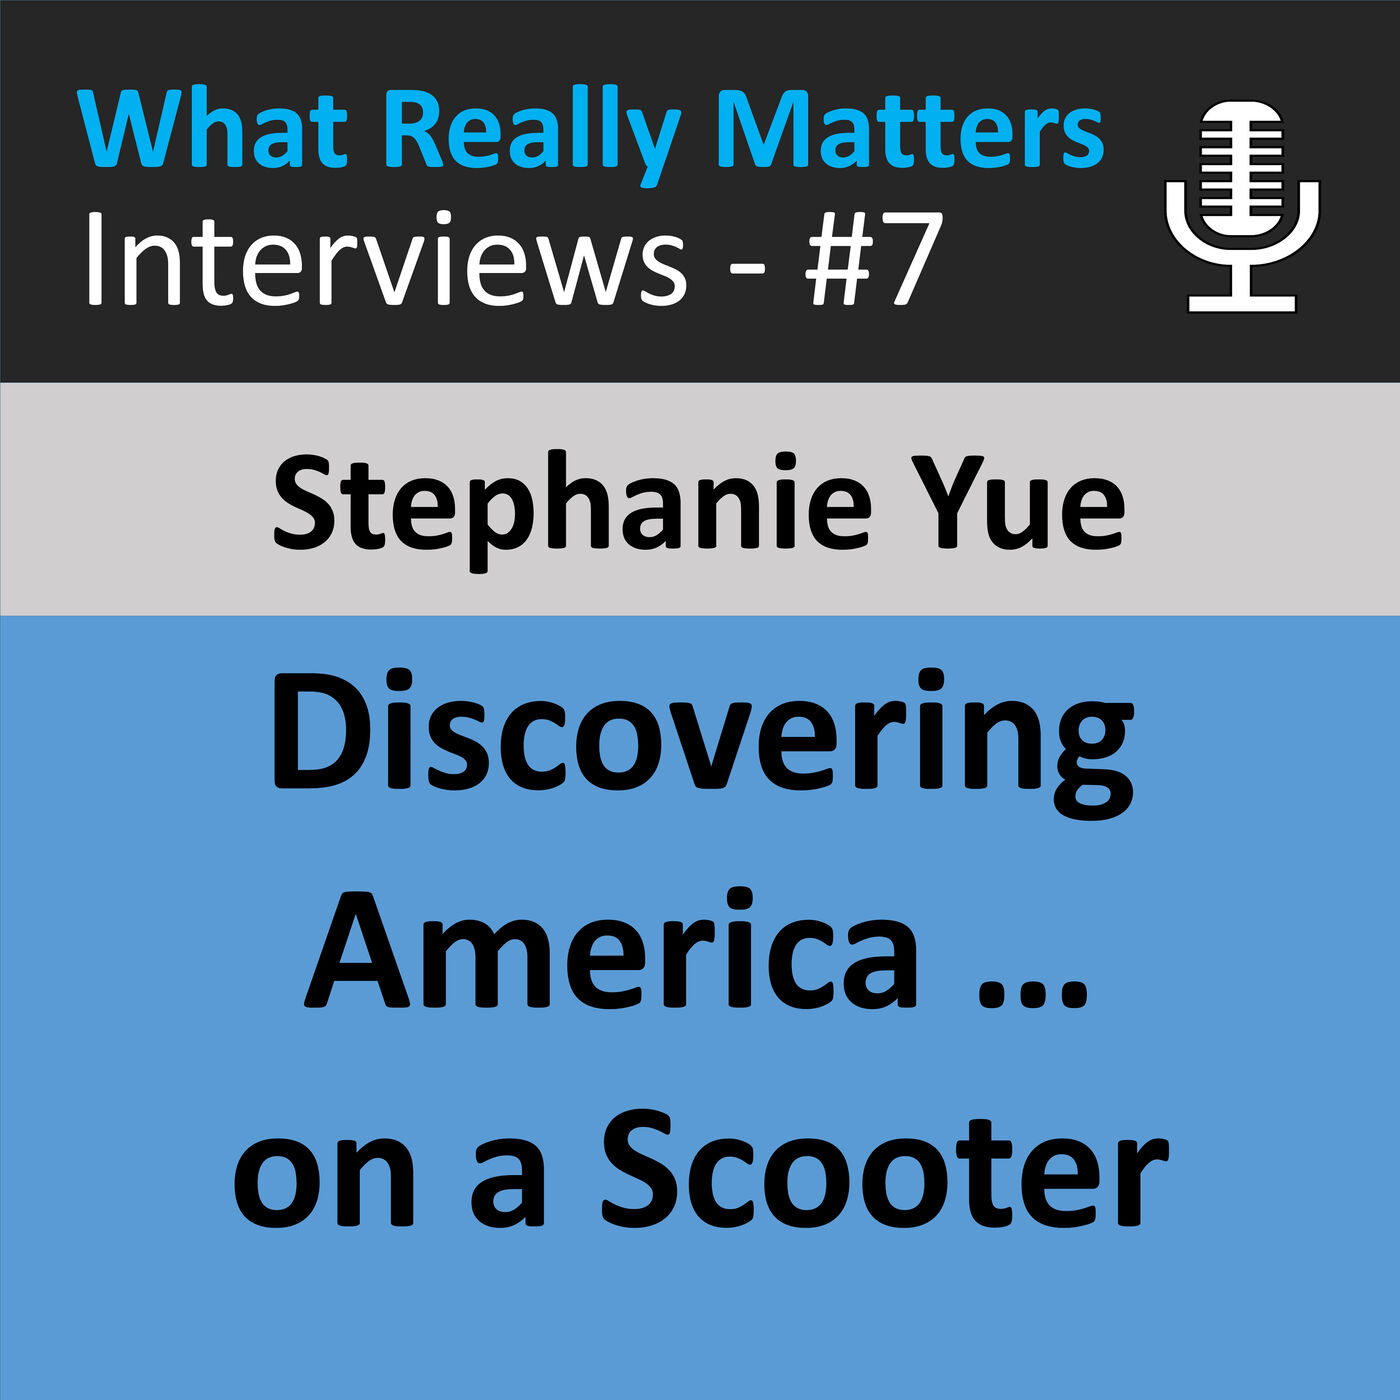 WRMI 007 - Discovering America by Scooter with Stephanie Yue